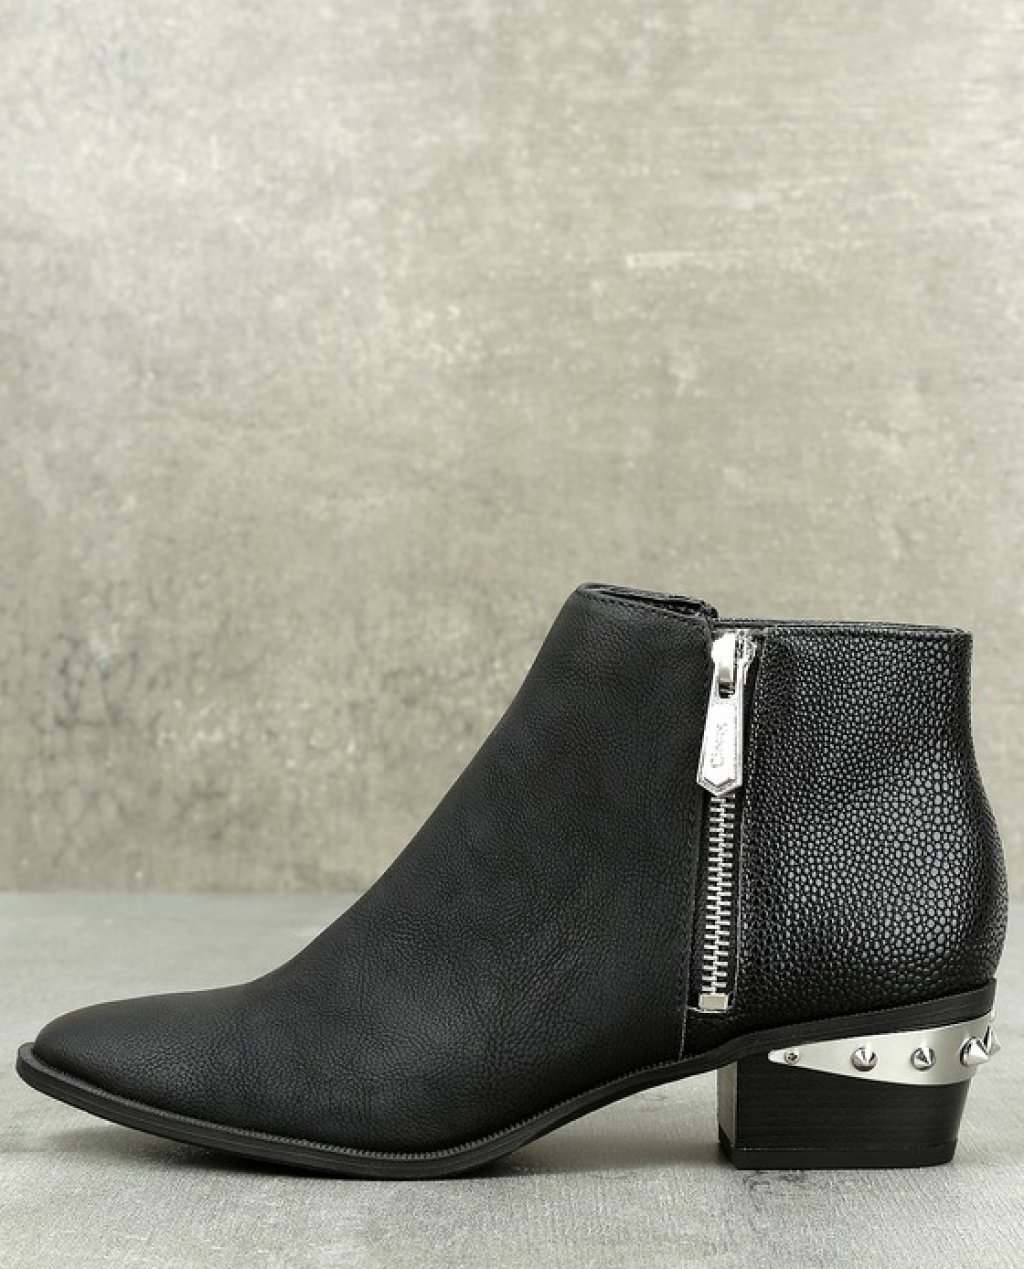 Circus by Sam Edelman Holt Black Leather Ankle Boots